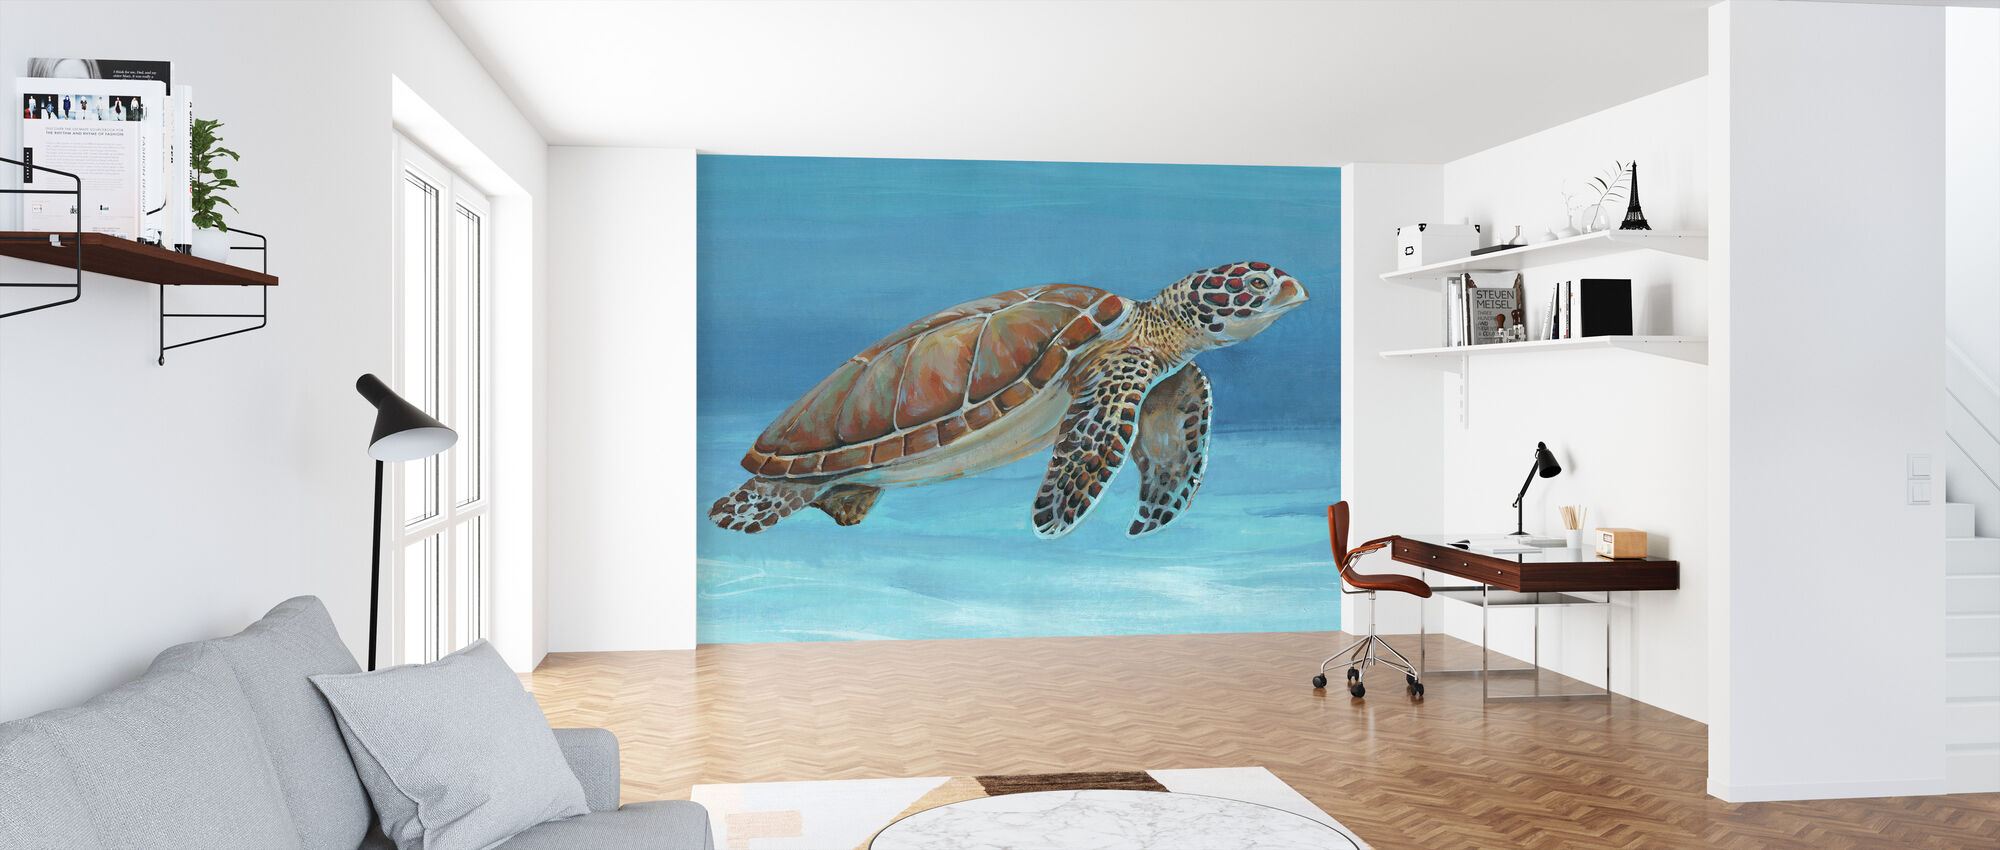 Ocean Sea Turtle - Wallpaper - Office